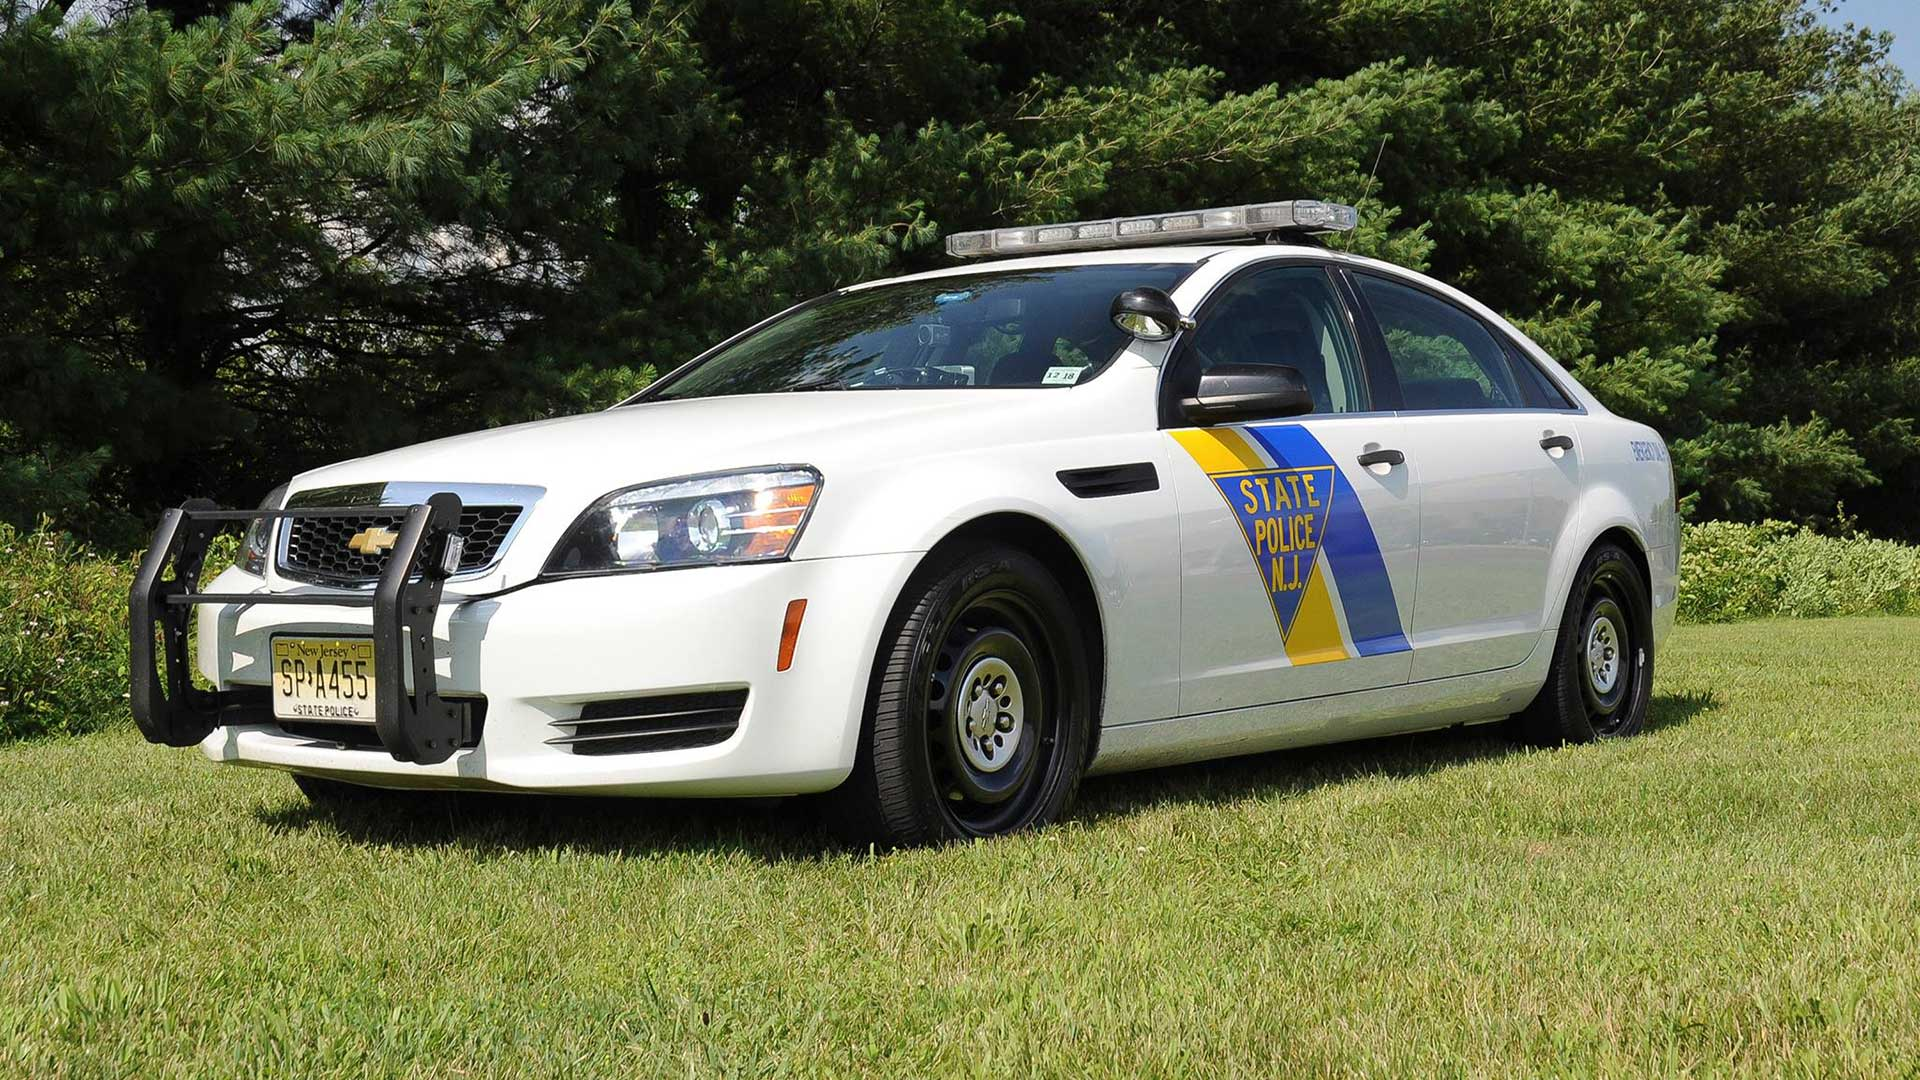 New Jersey State Police release data on millions of traffic stops over going back since 2009